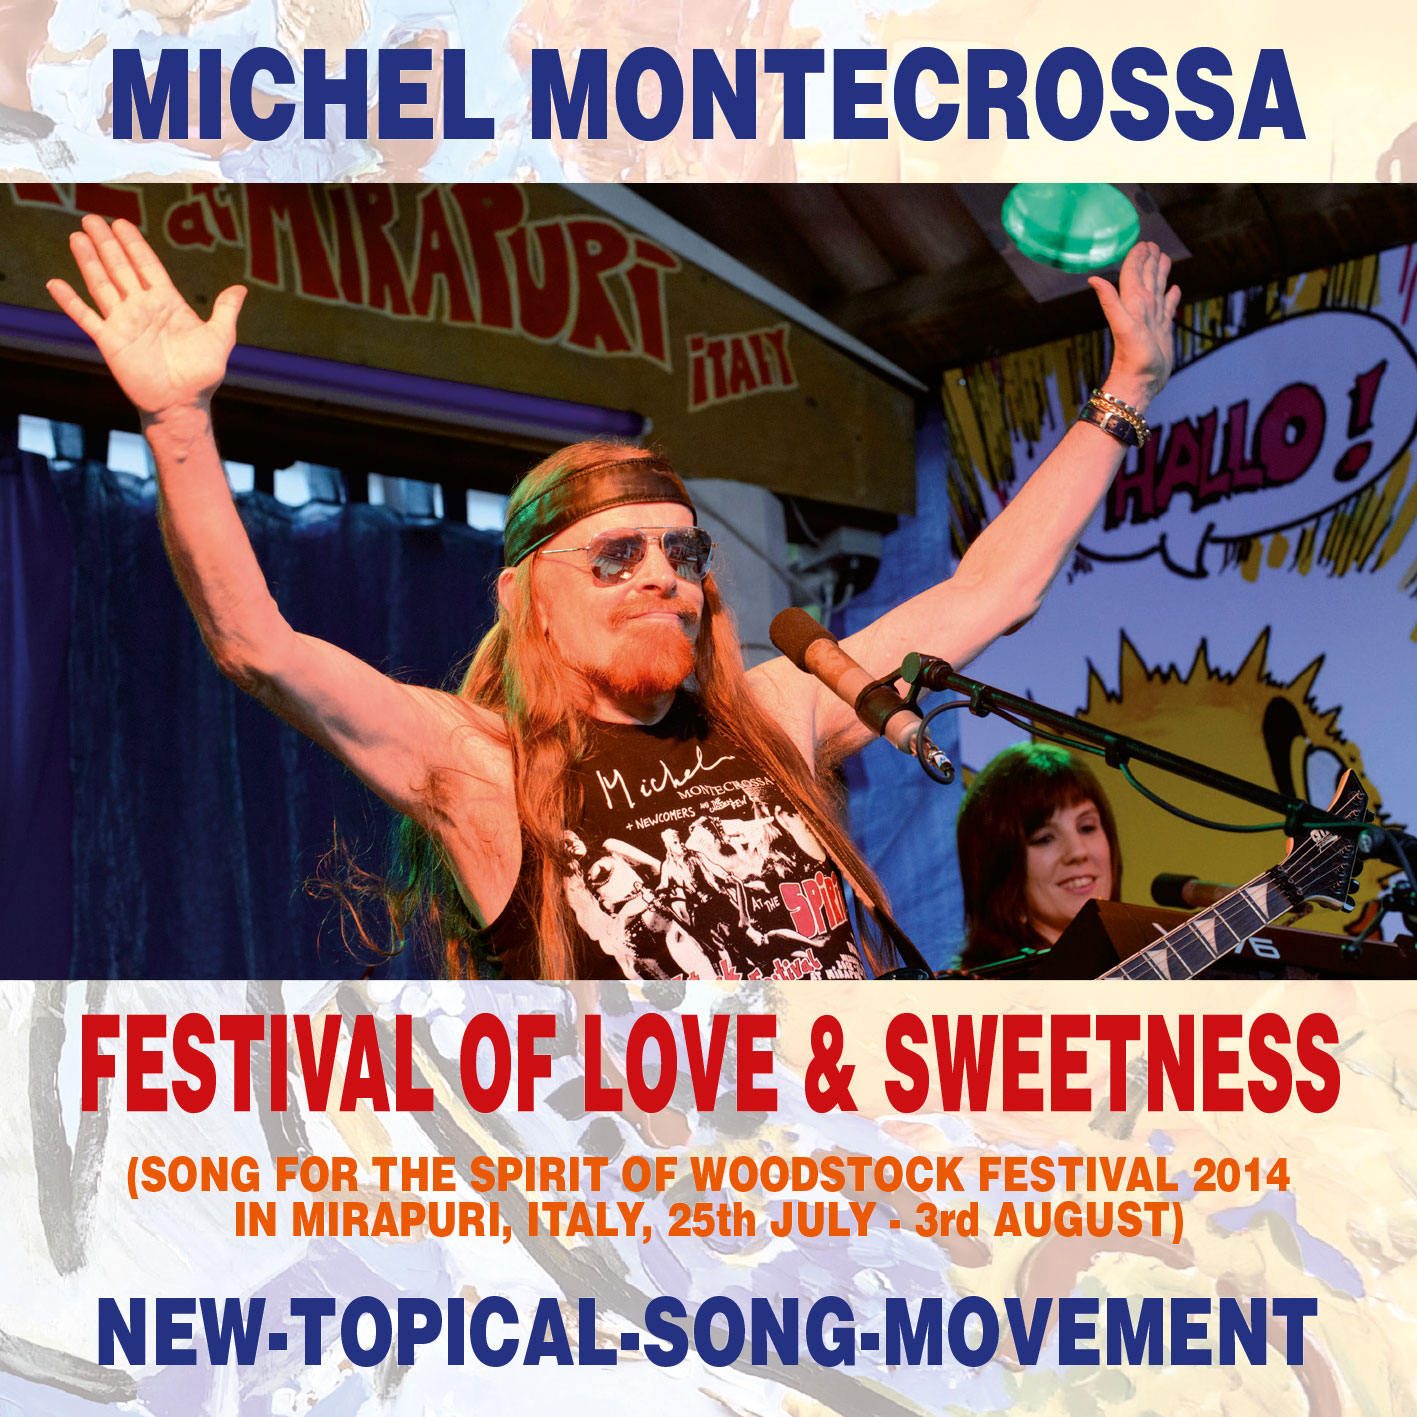 Festival Of Love & Sweetness